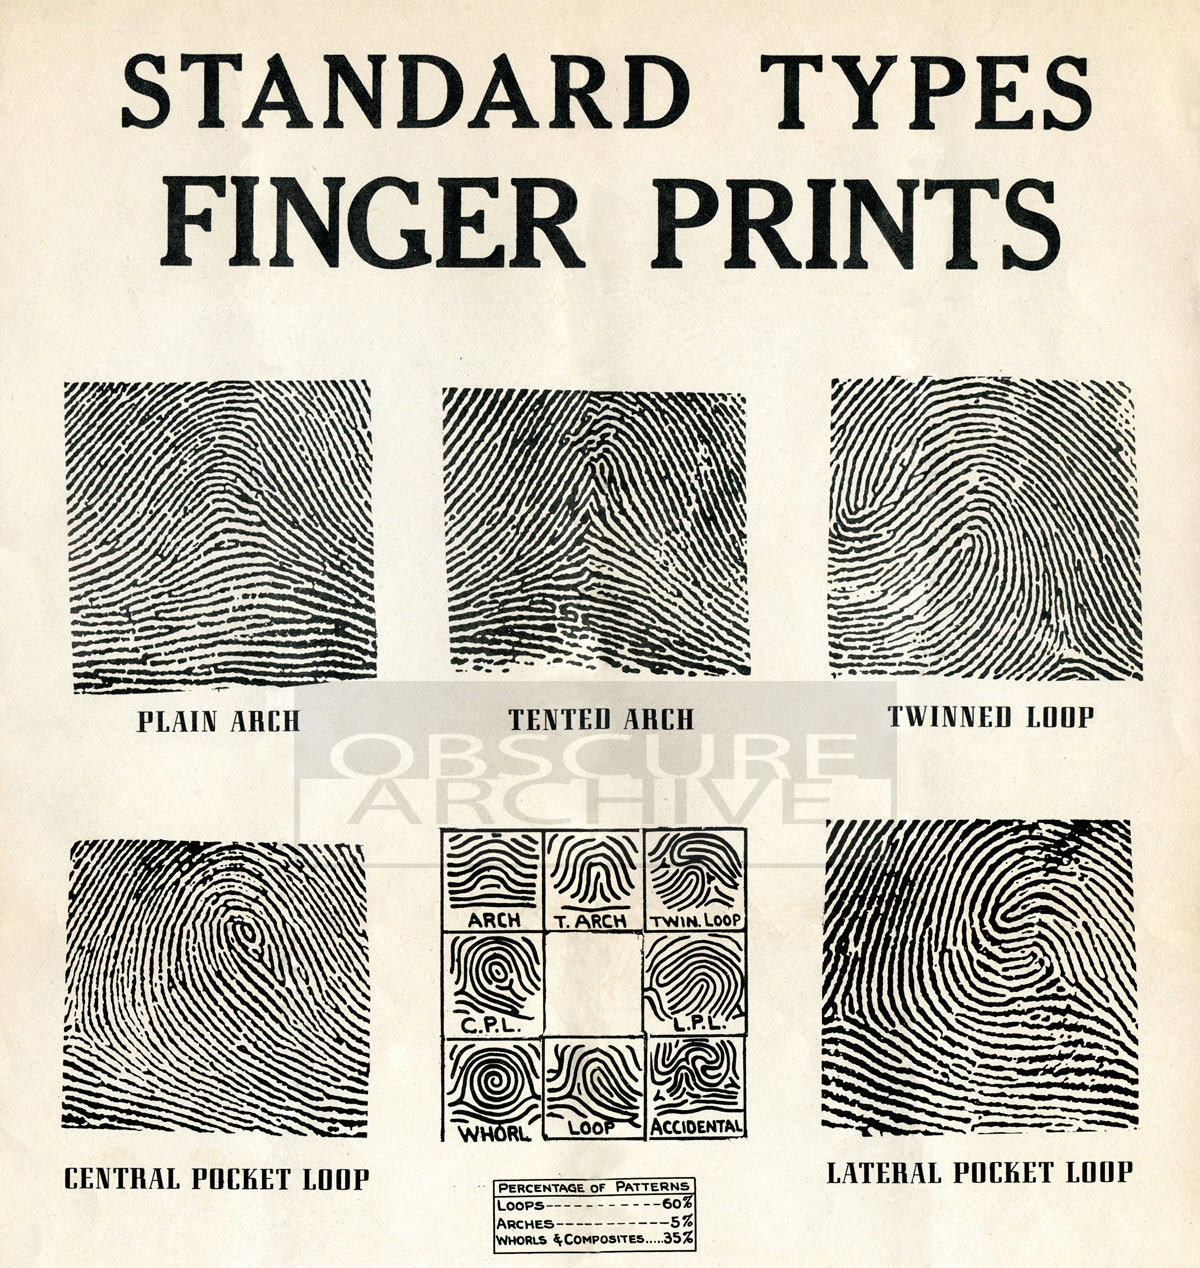 fingerprint identification thesis Essays - largest database of quality sample essays and research papers on research paper on dna fingerprinting automated fingerprint identification.